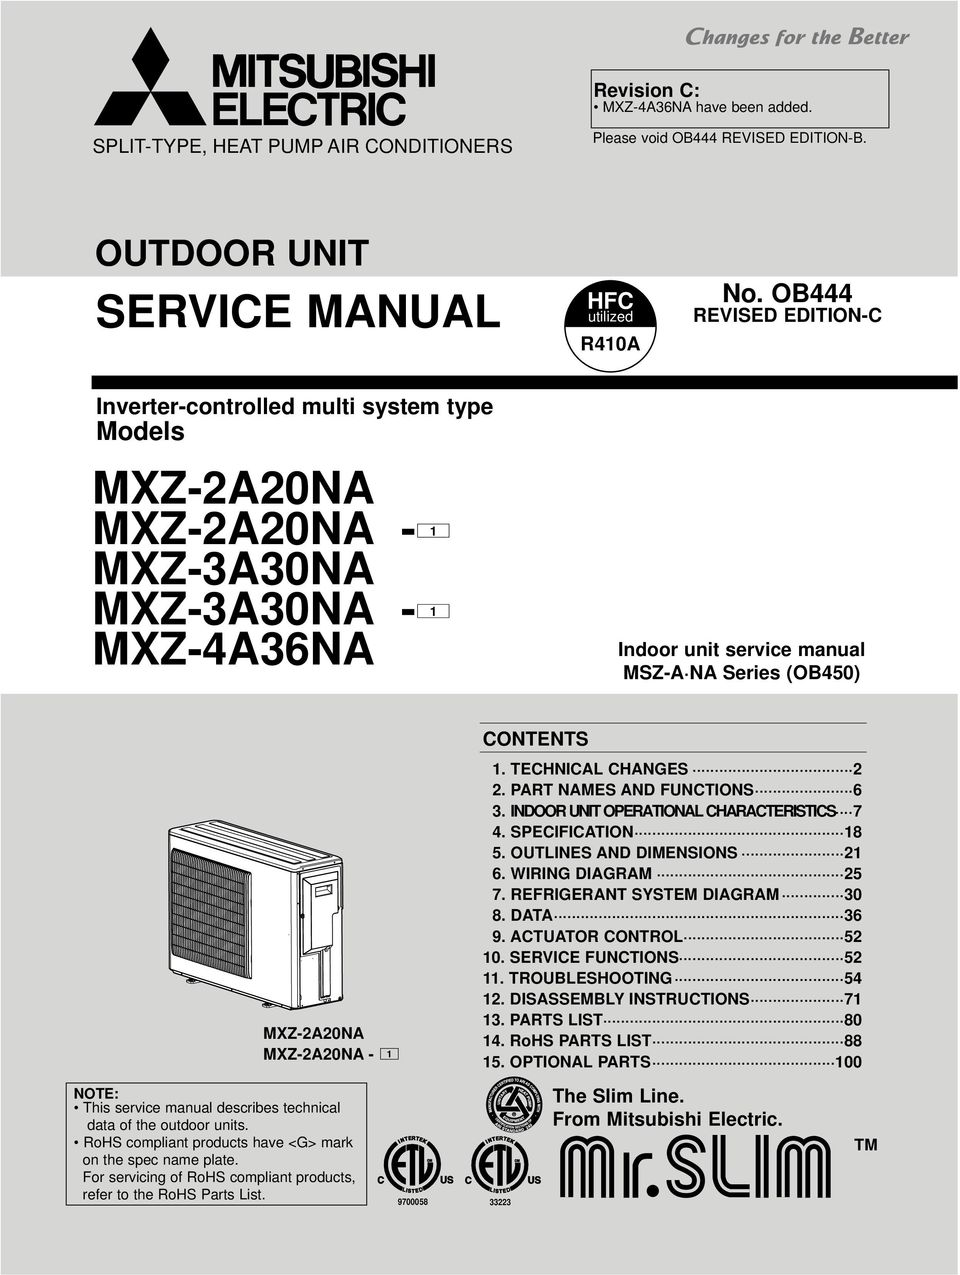 hight resolution of mxz a0na technical chanes part names and functions 6 3 indoor